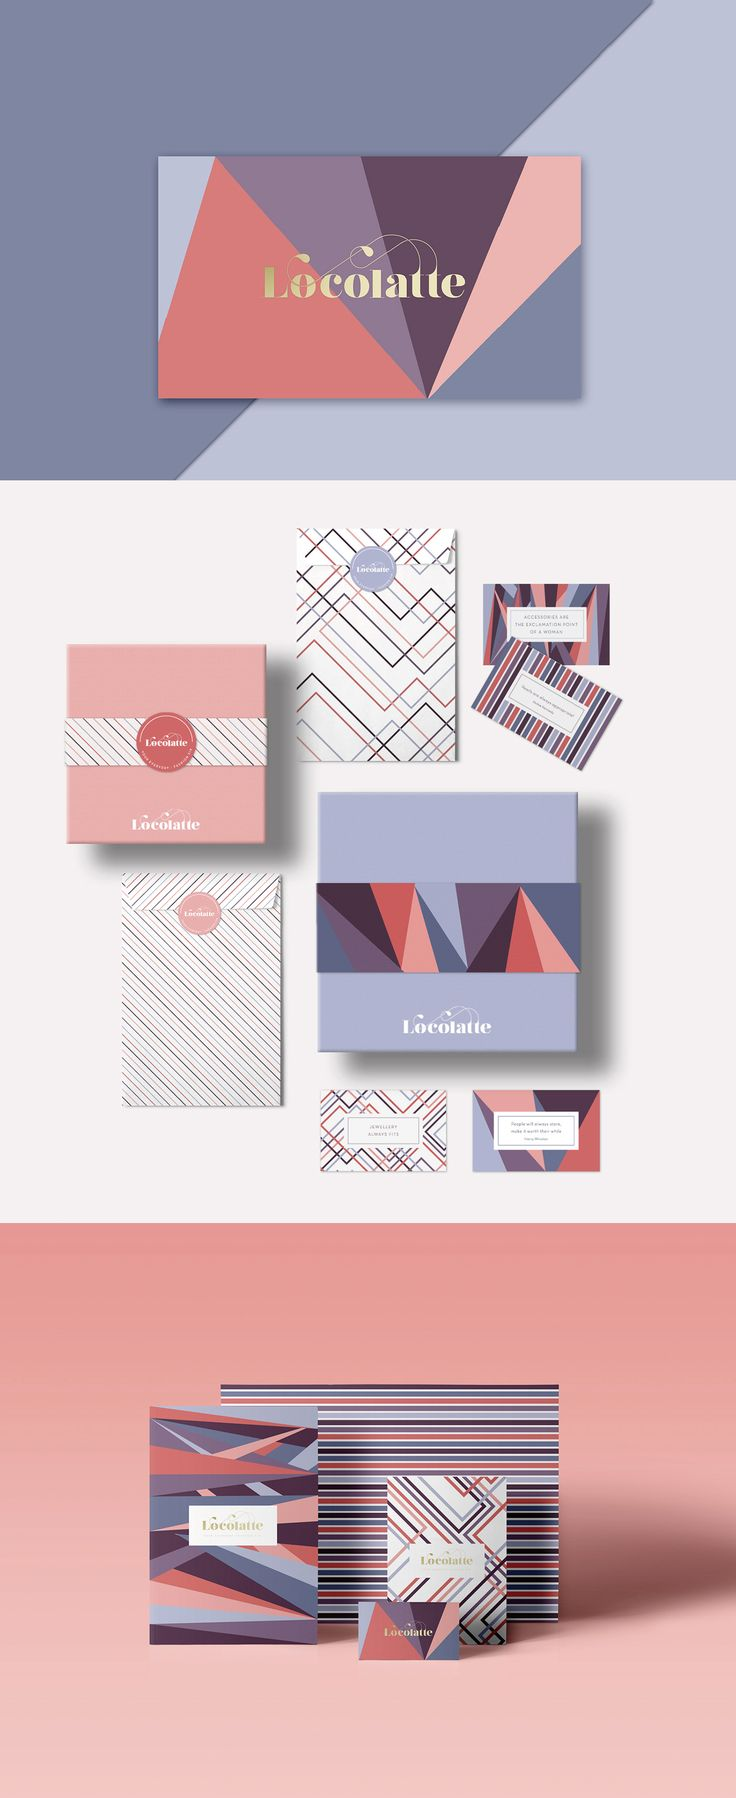 26 best 112 images on Pinterest | Editorial design, Graphics and ...